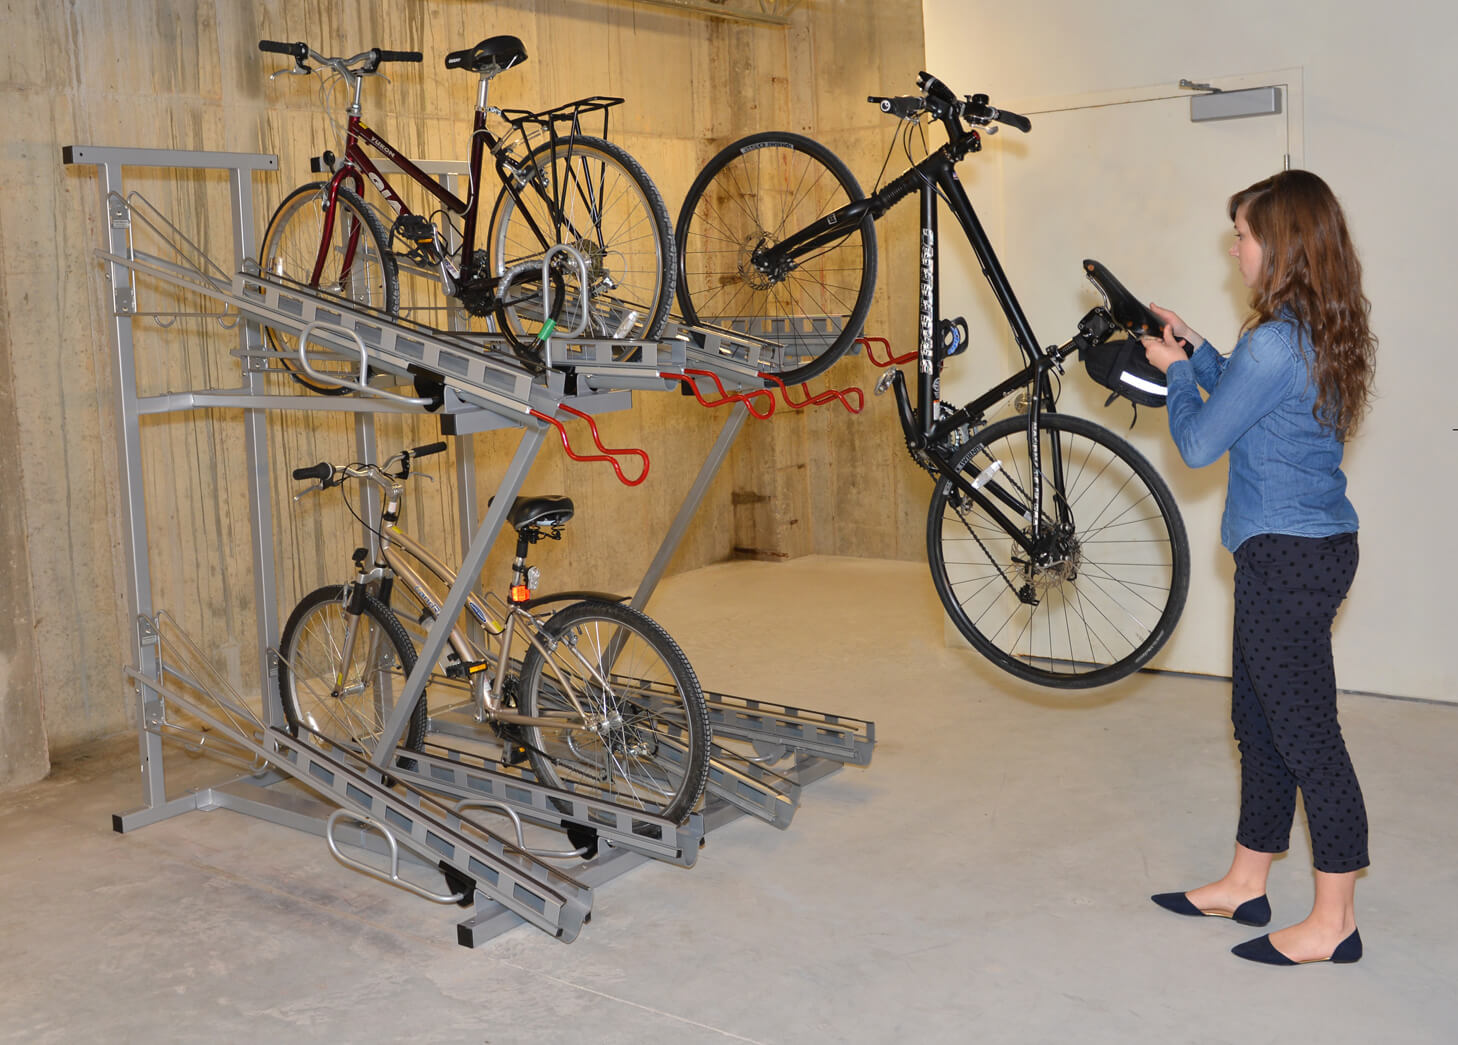 Parking Garage Bike Rack Bike Room Layout Cyclesafe